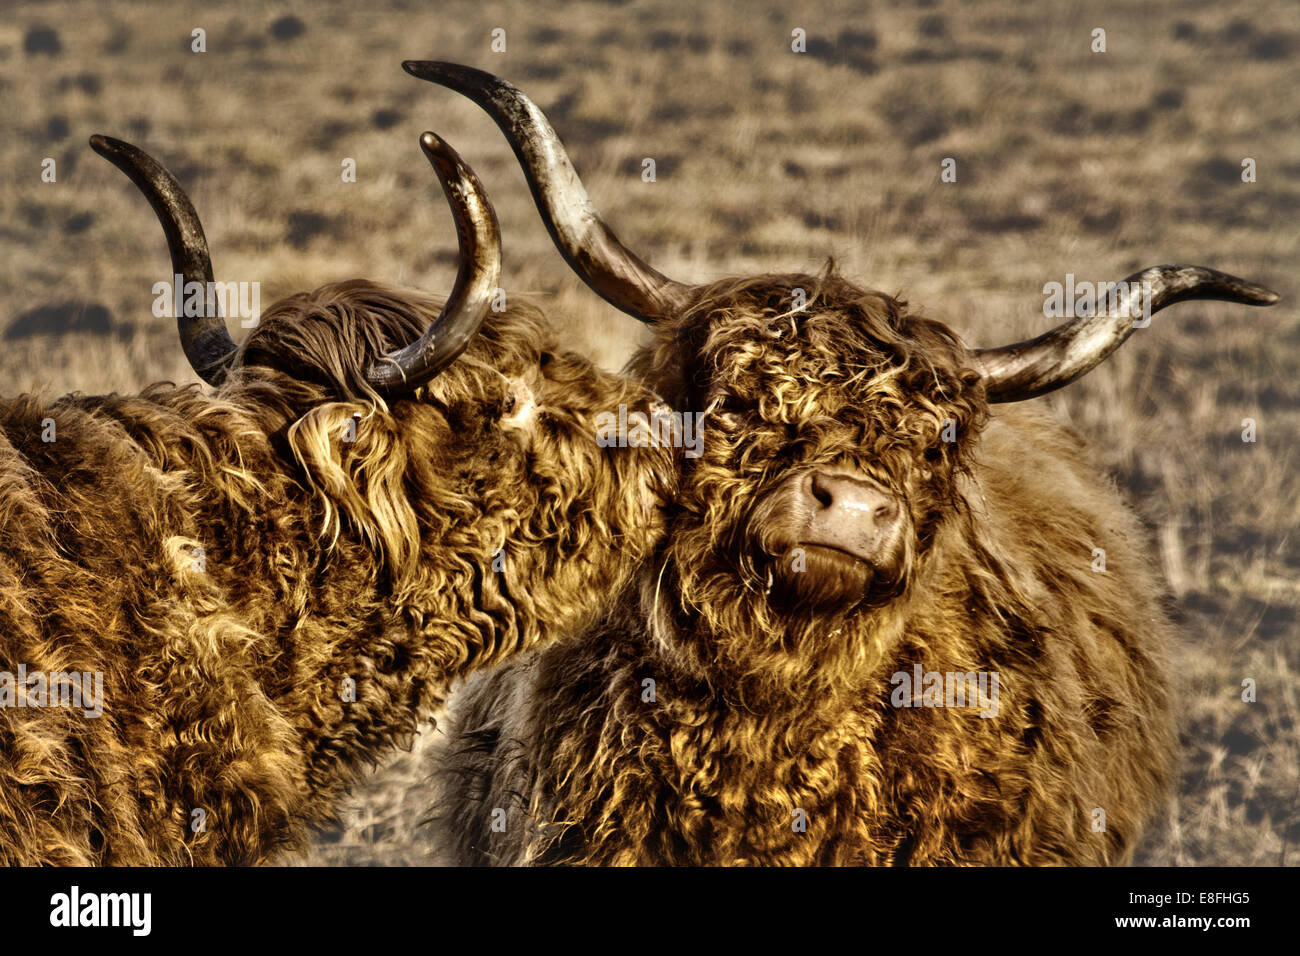 Two hairy cows kissing - Stock Image